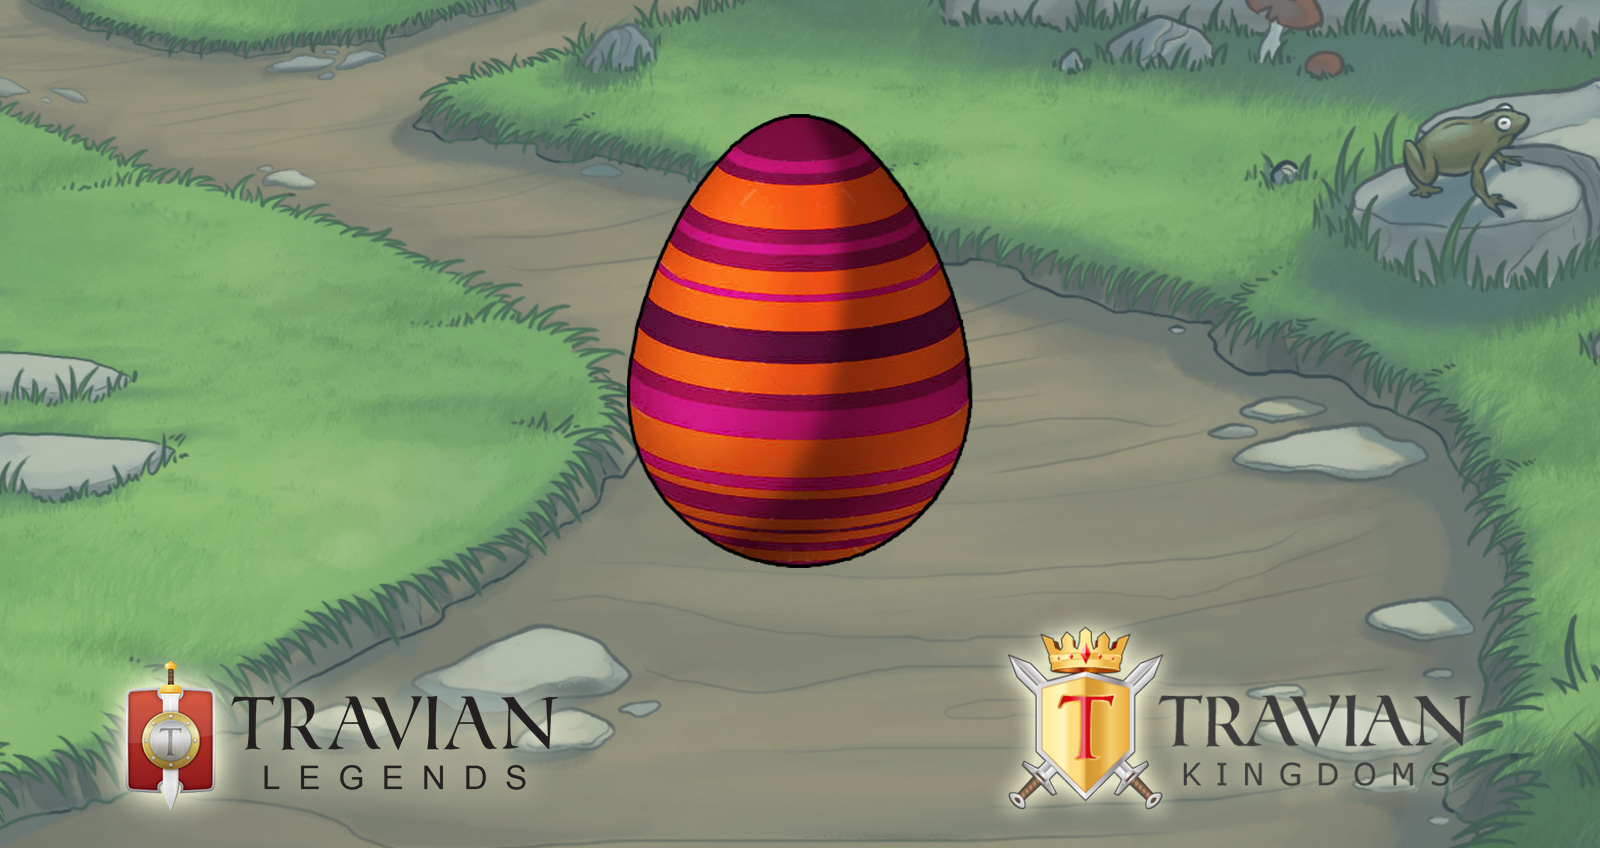 Word Hunt: You've found an egg!